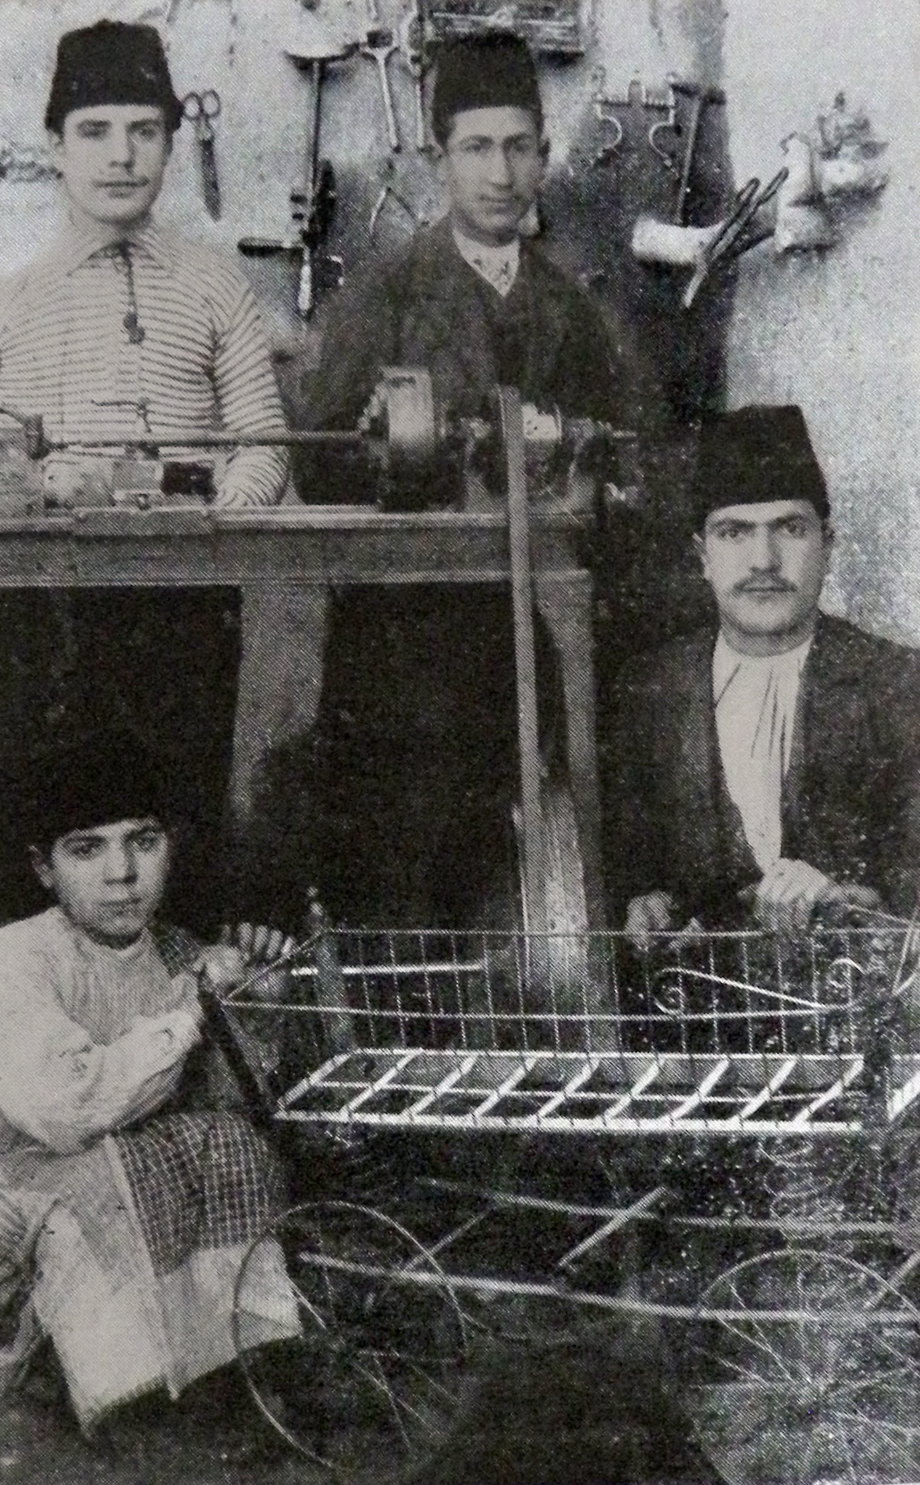 Armenian blacksmiths in the plain of Harput (Source: Vahé Haig, op. cit.)